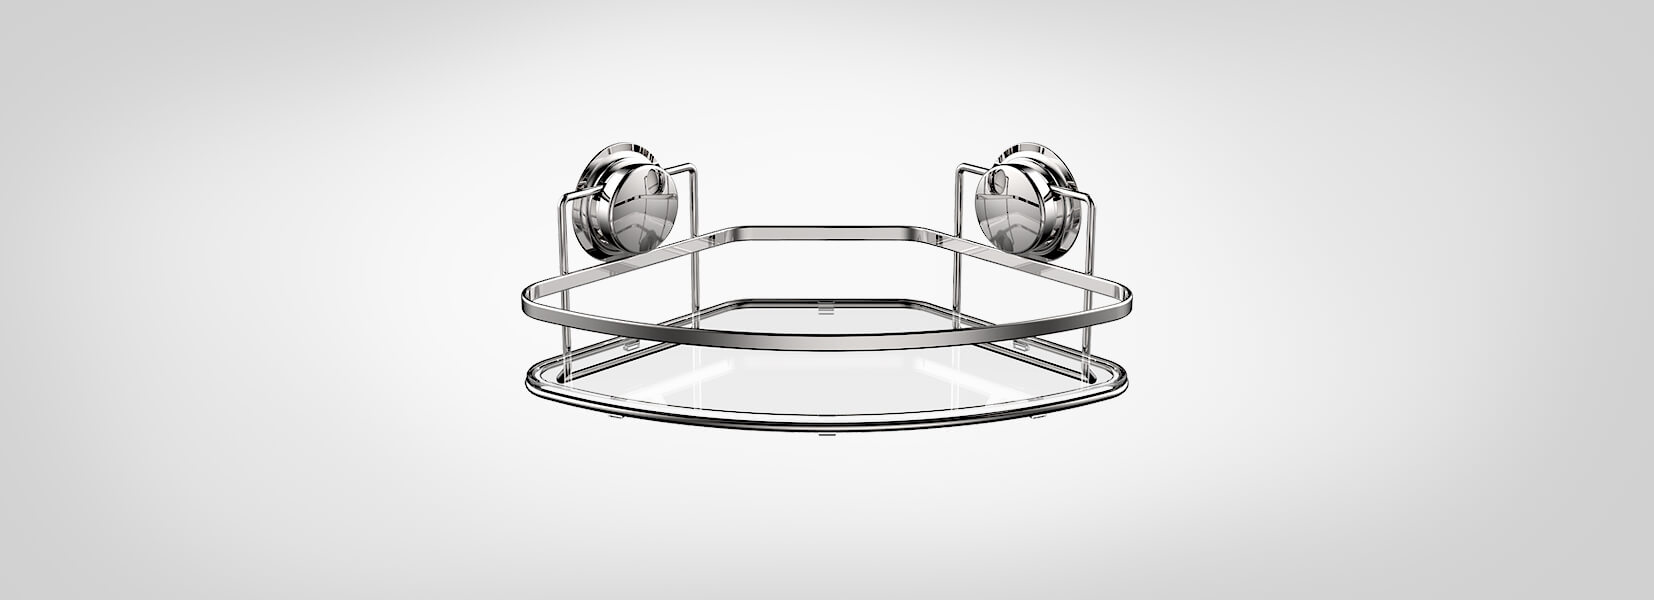 Chrome-corner-basket-with-suction-cup